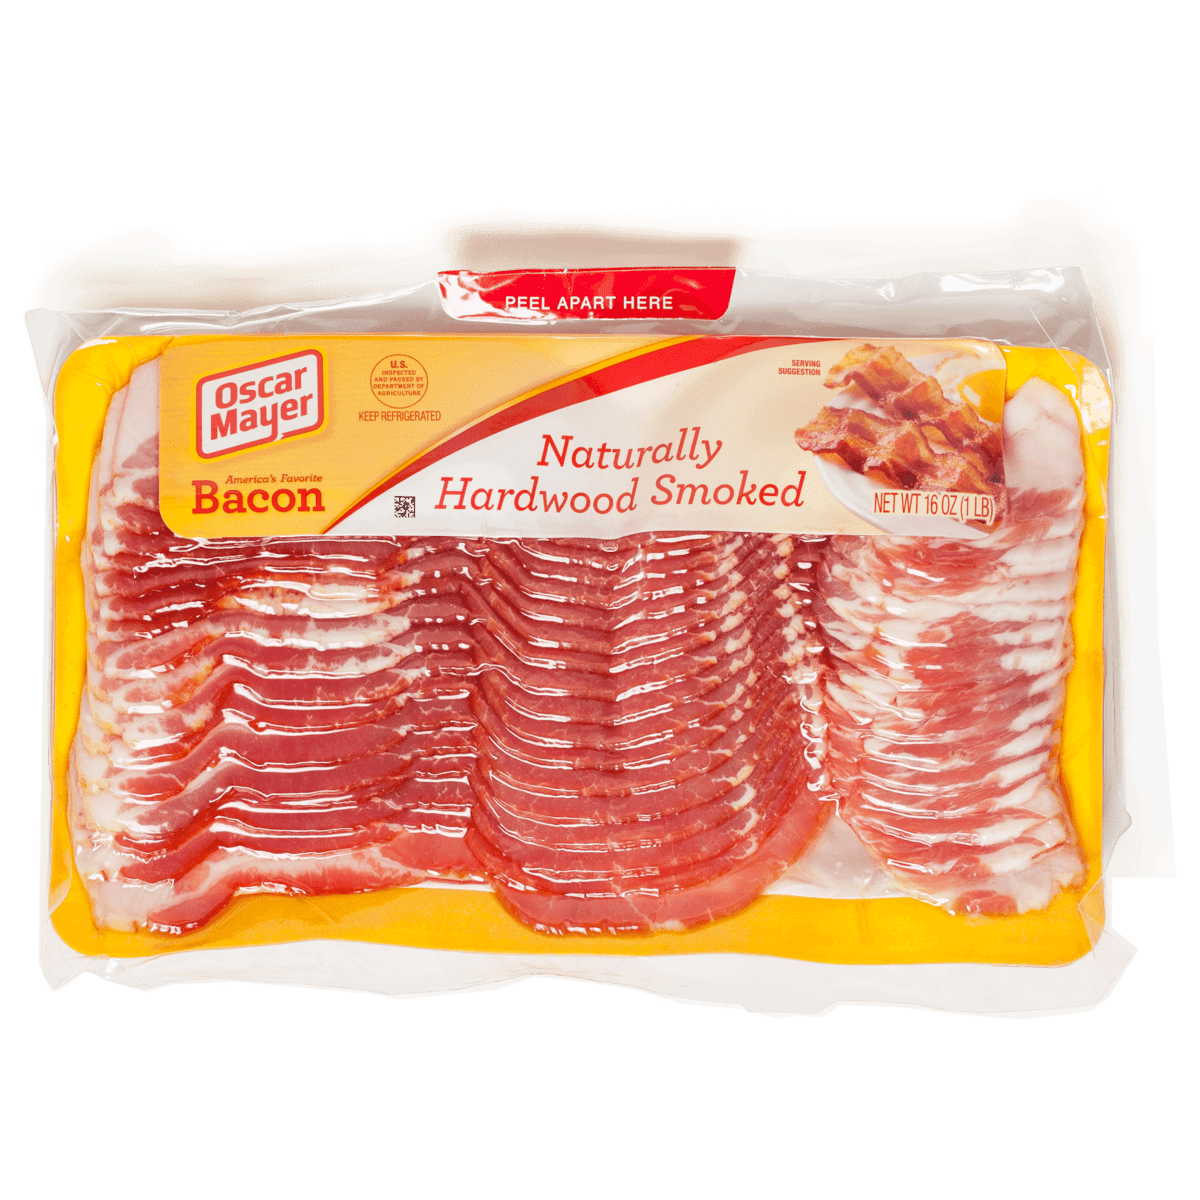 Transparent bacon smoked. The best supermarket cook